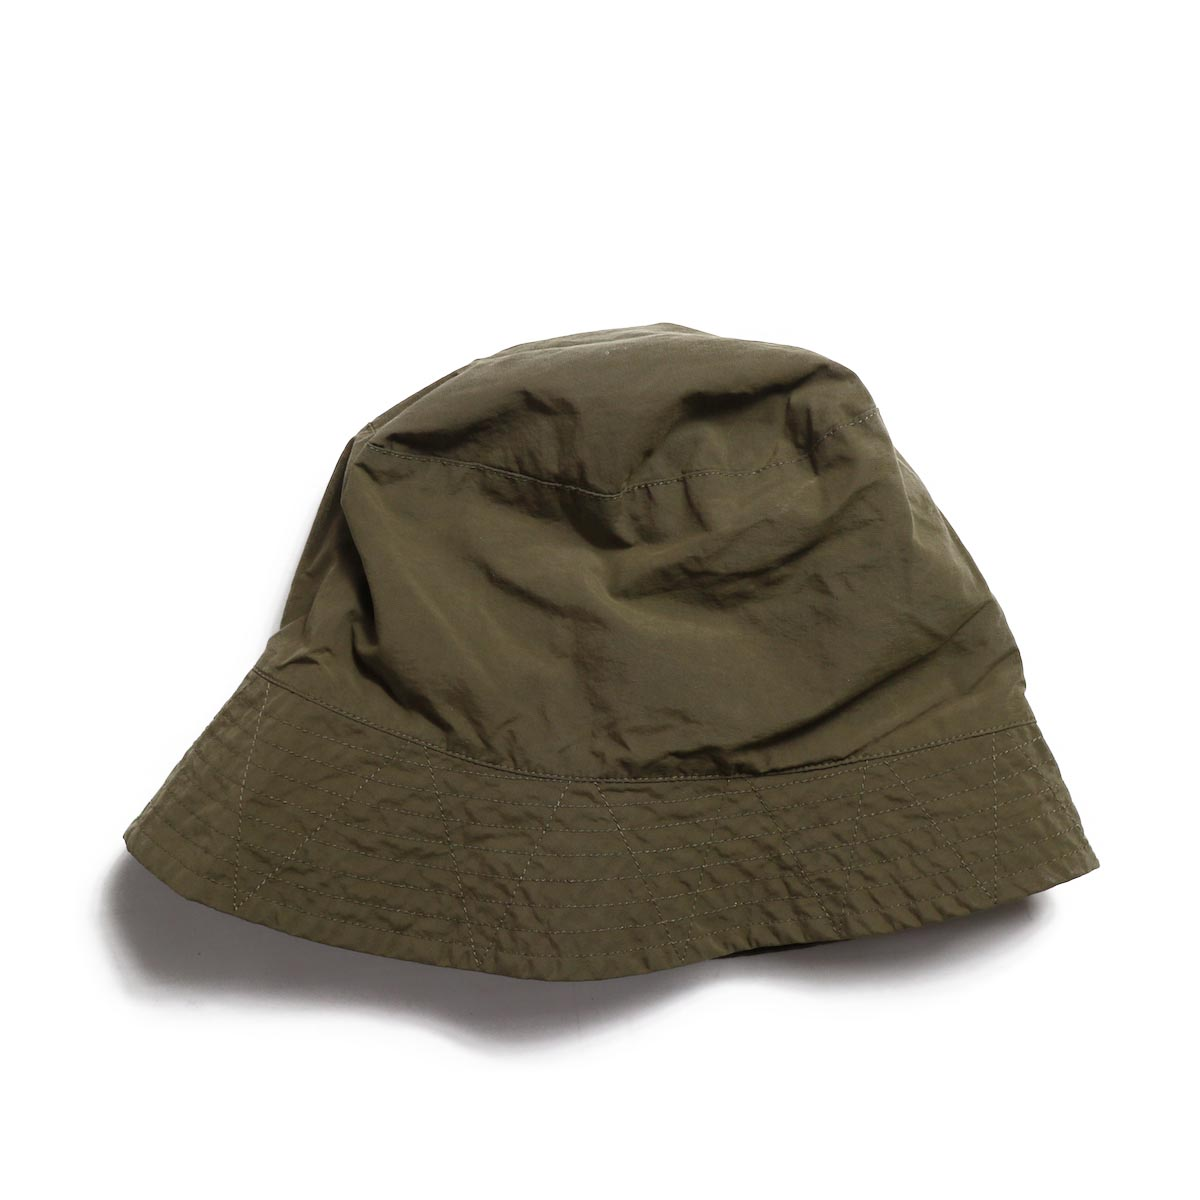 Engineered Garments / Bucket Hat -4.5oz Waxed Cotton